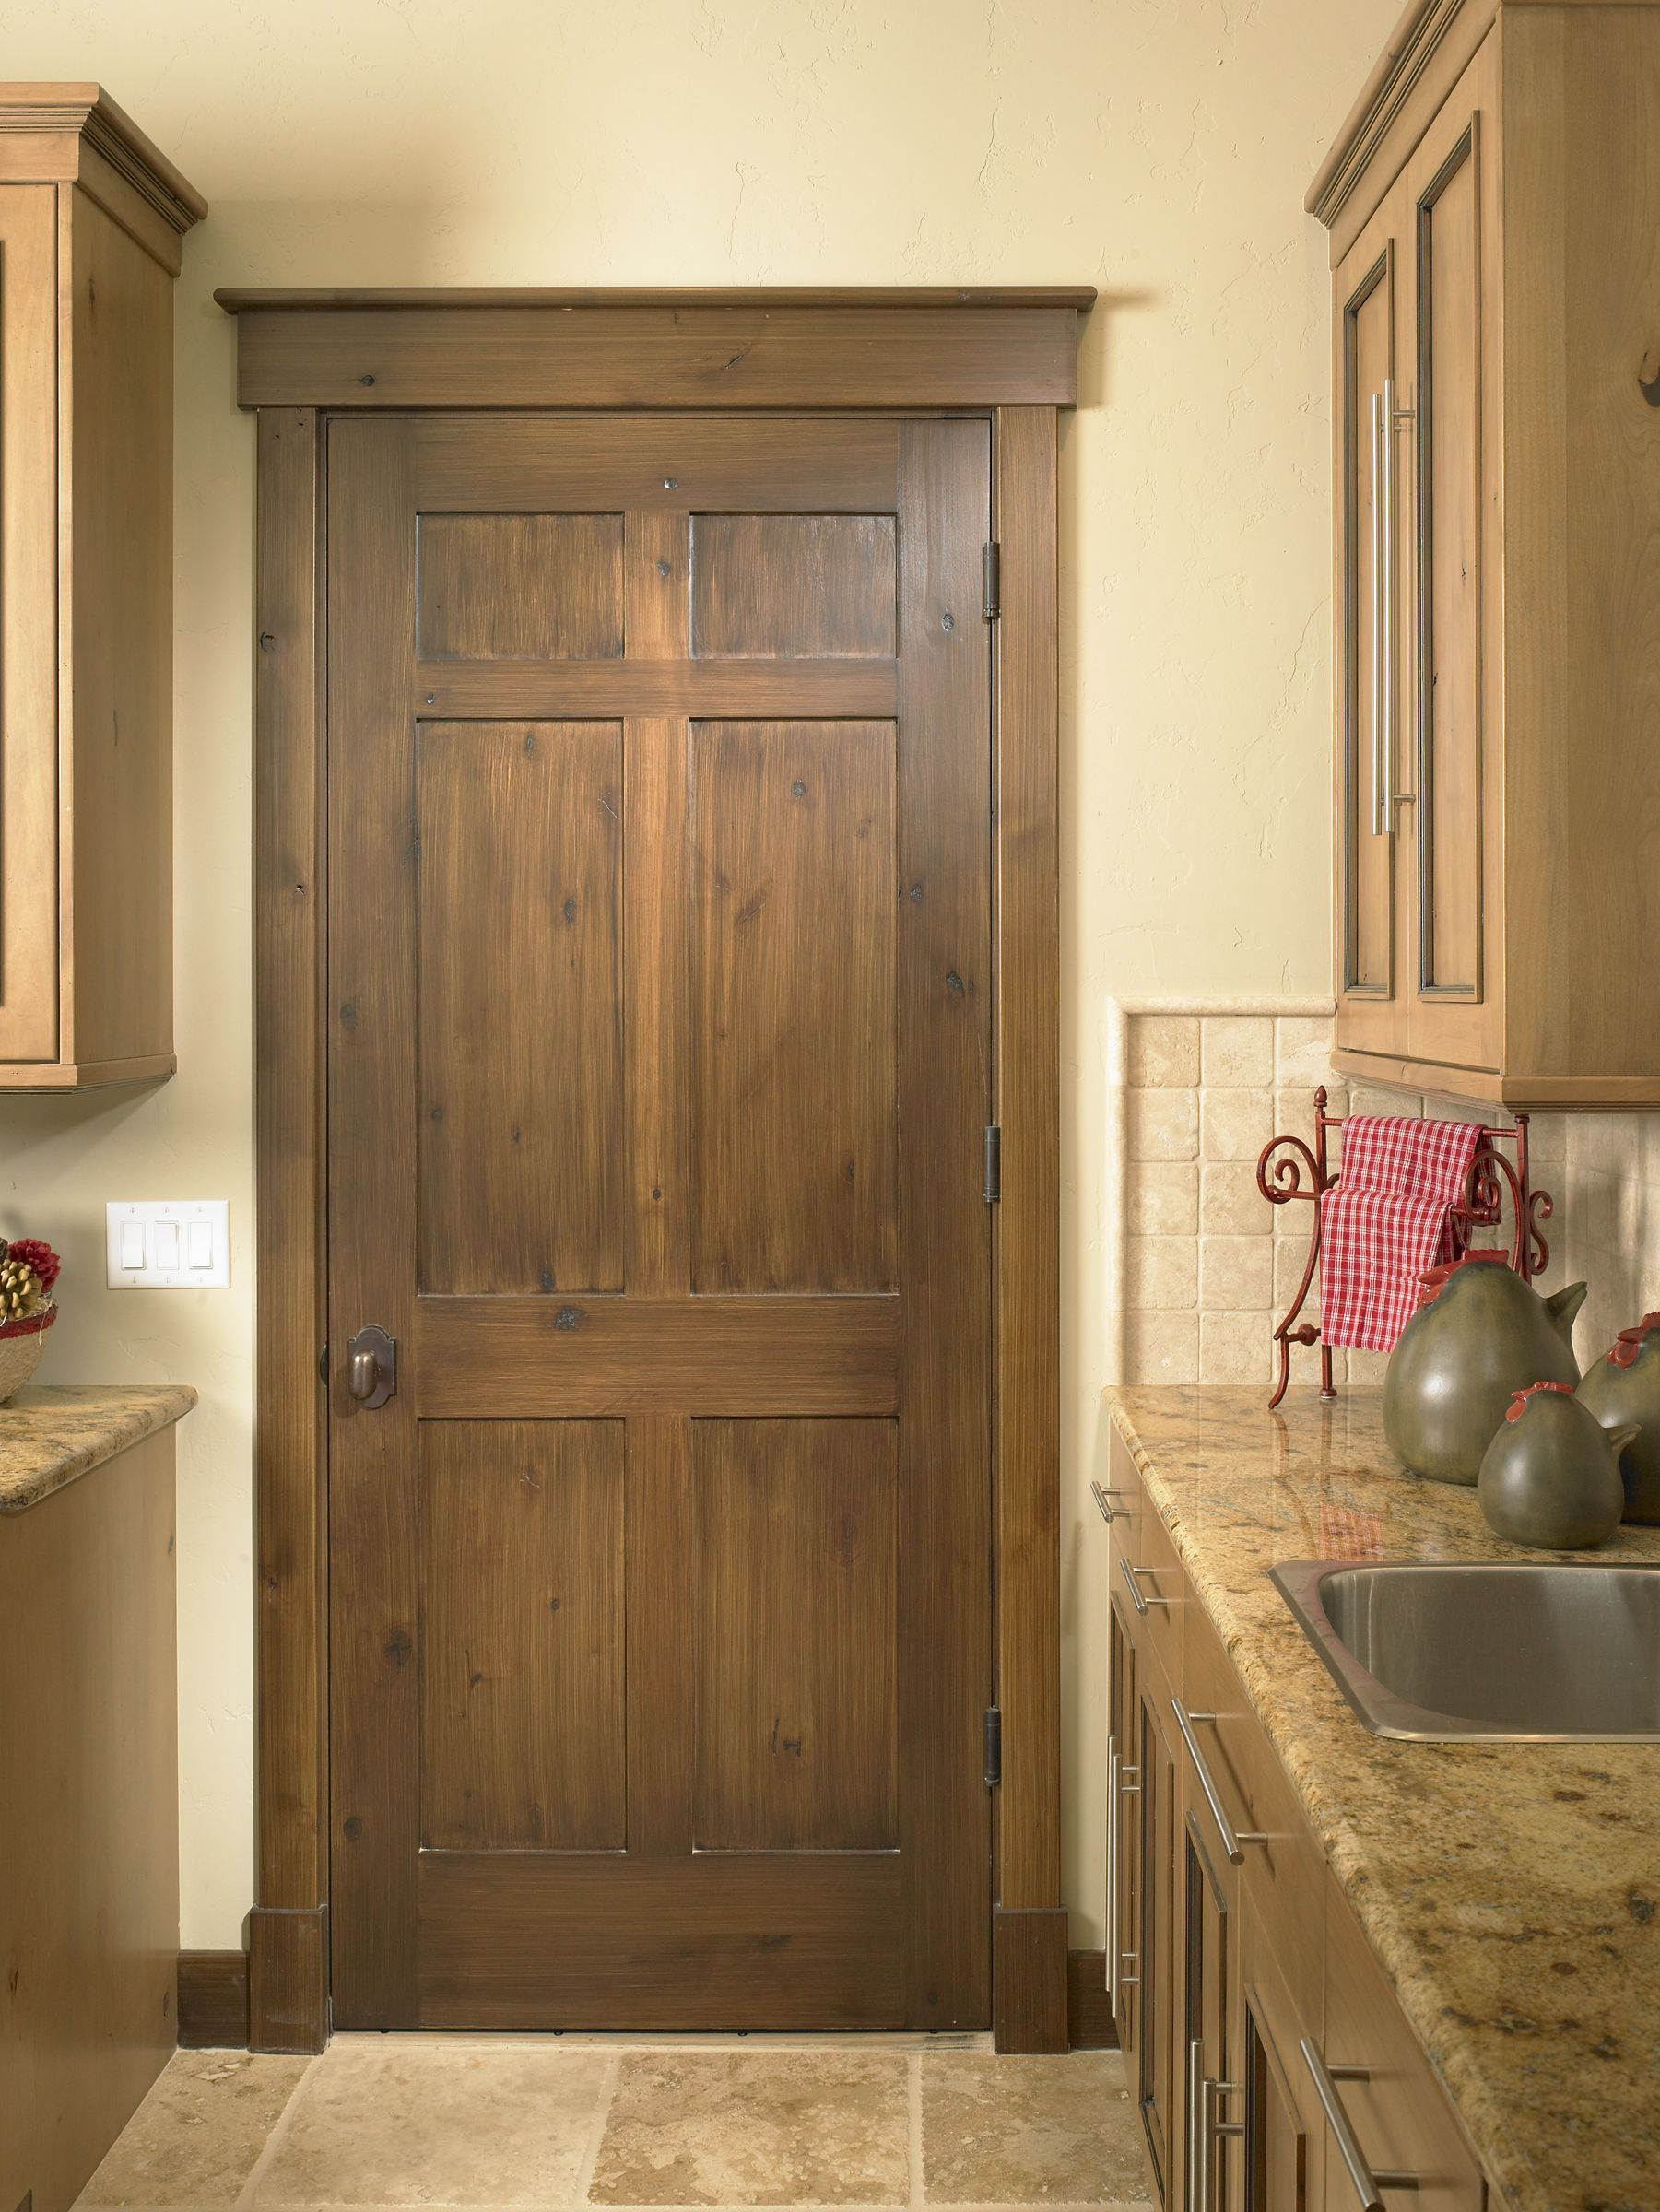 White interior doors with oak trim - Wood Color Rustic Craftsman Traditional Interior Doors Denver Sun Mountain Inc